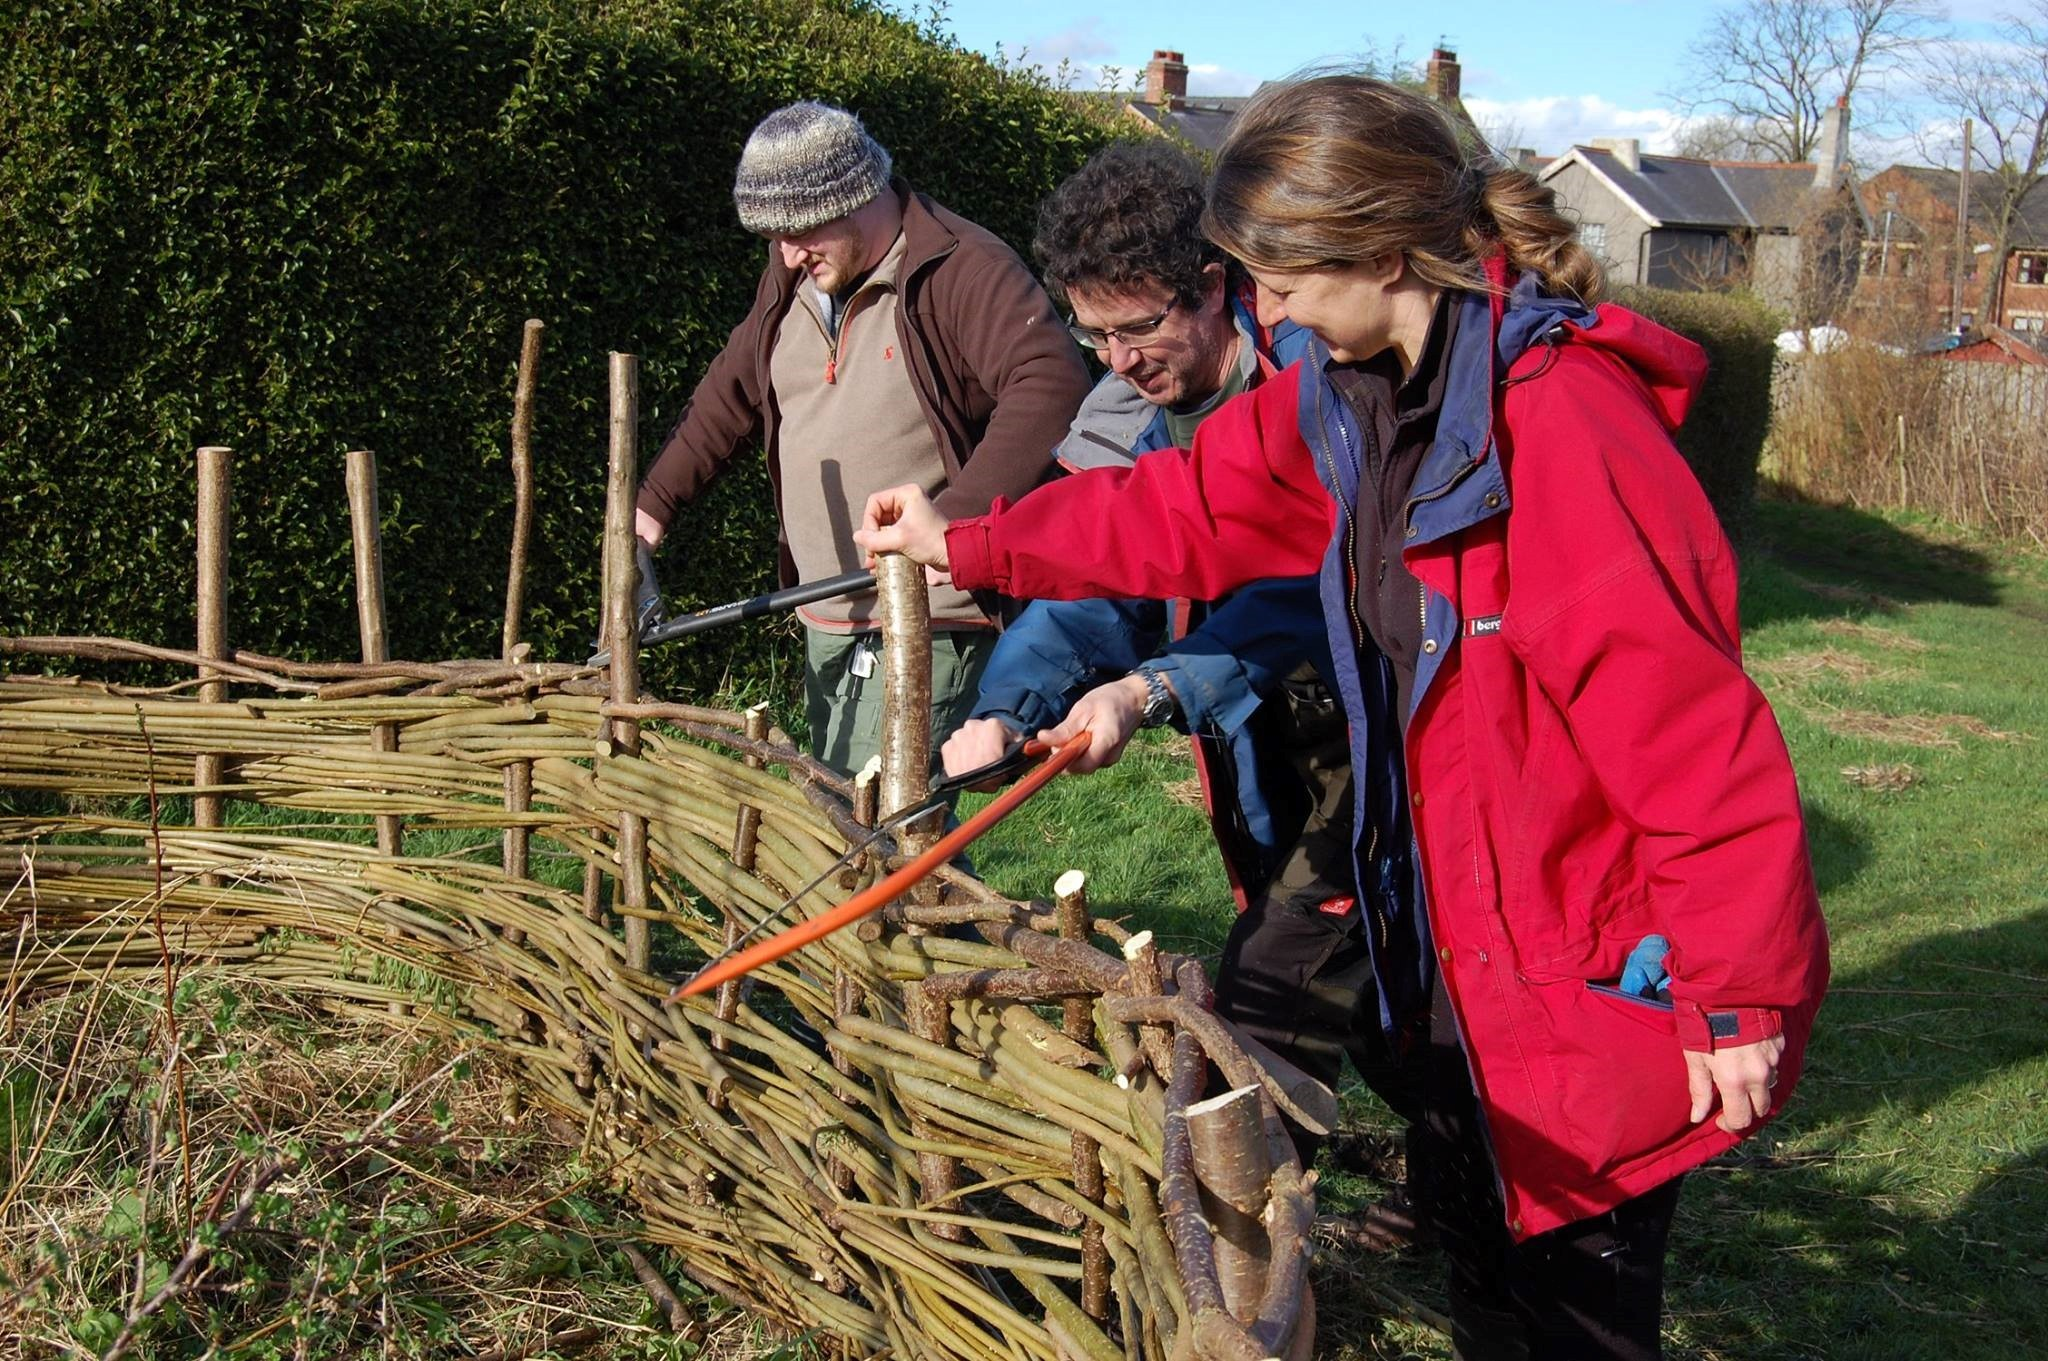 PROJECT: Volunteers learning traditional skills at the Hop Garden in High Spen